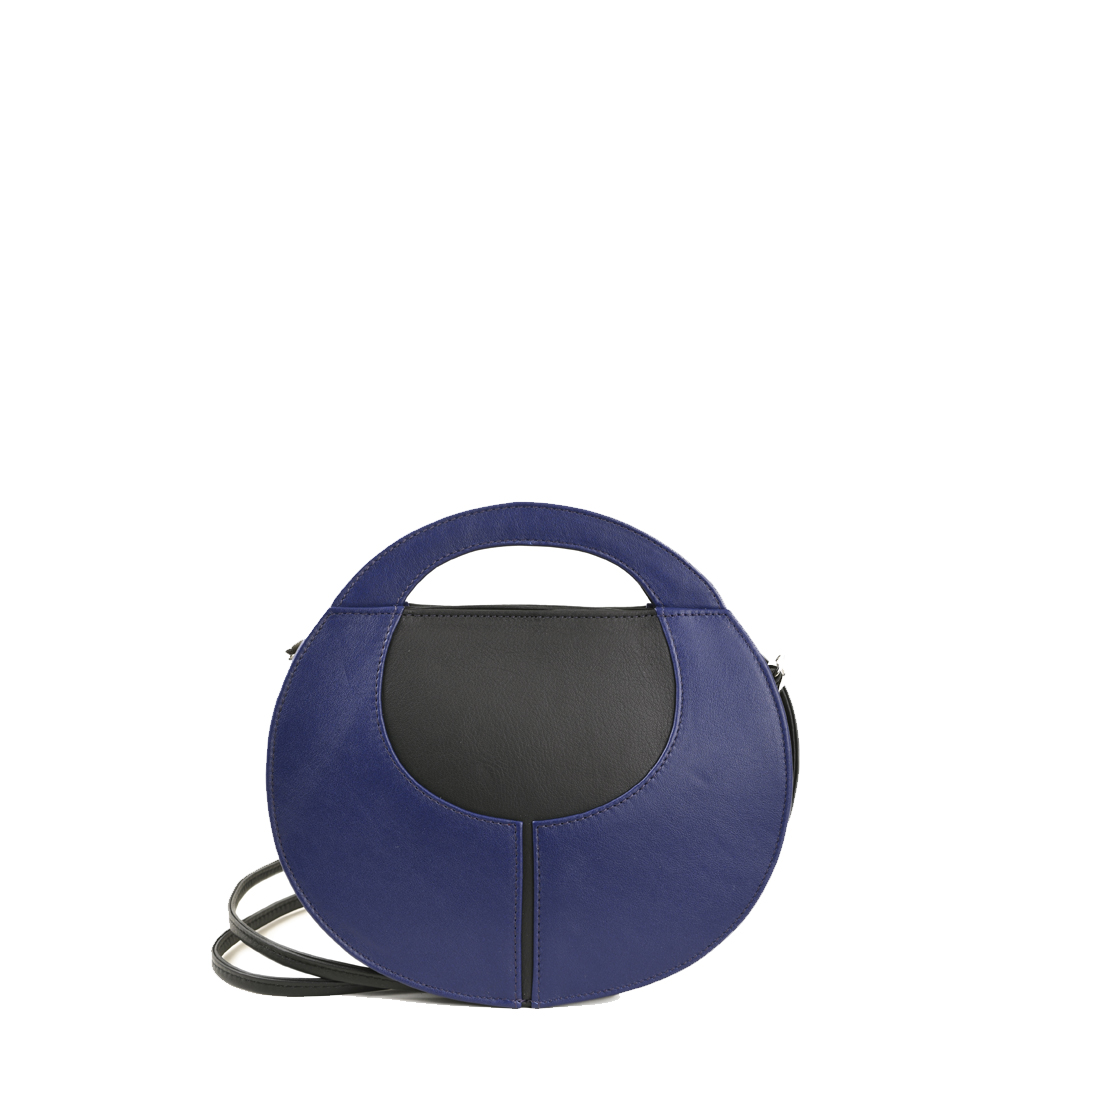 Olivia Purple Blue with black Leather Shoulder Bag